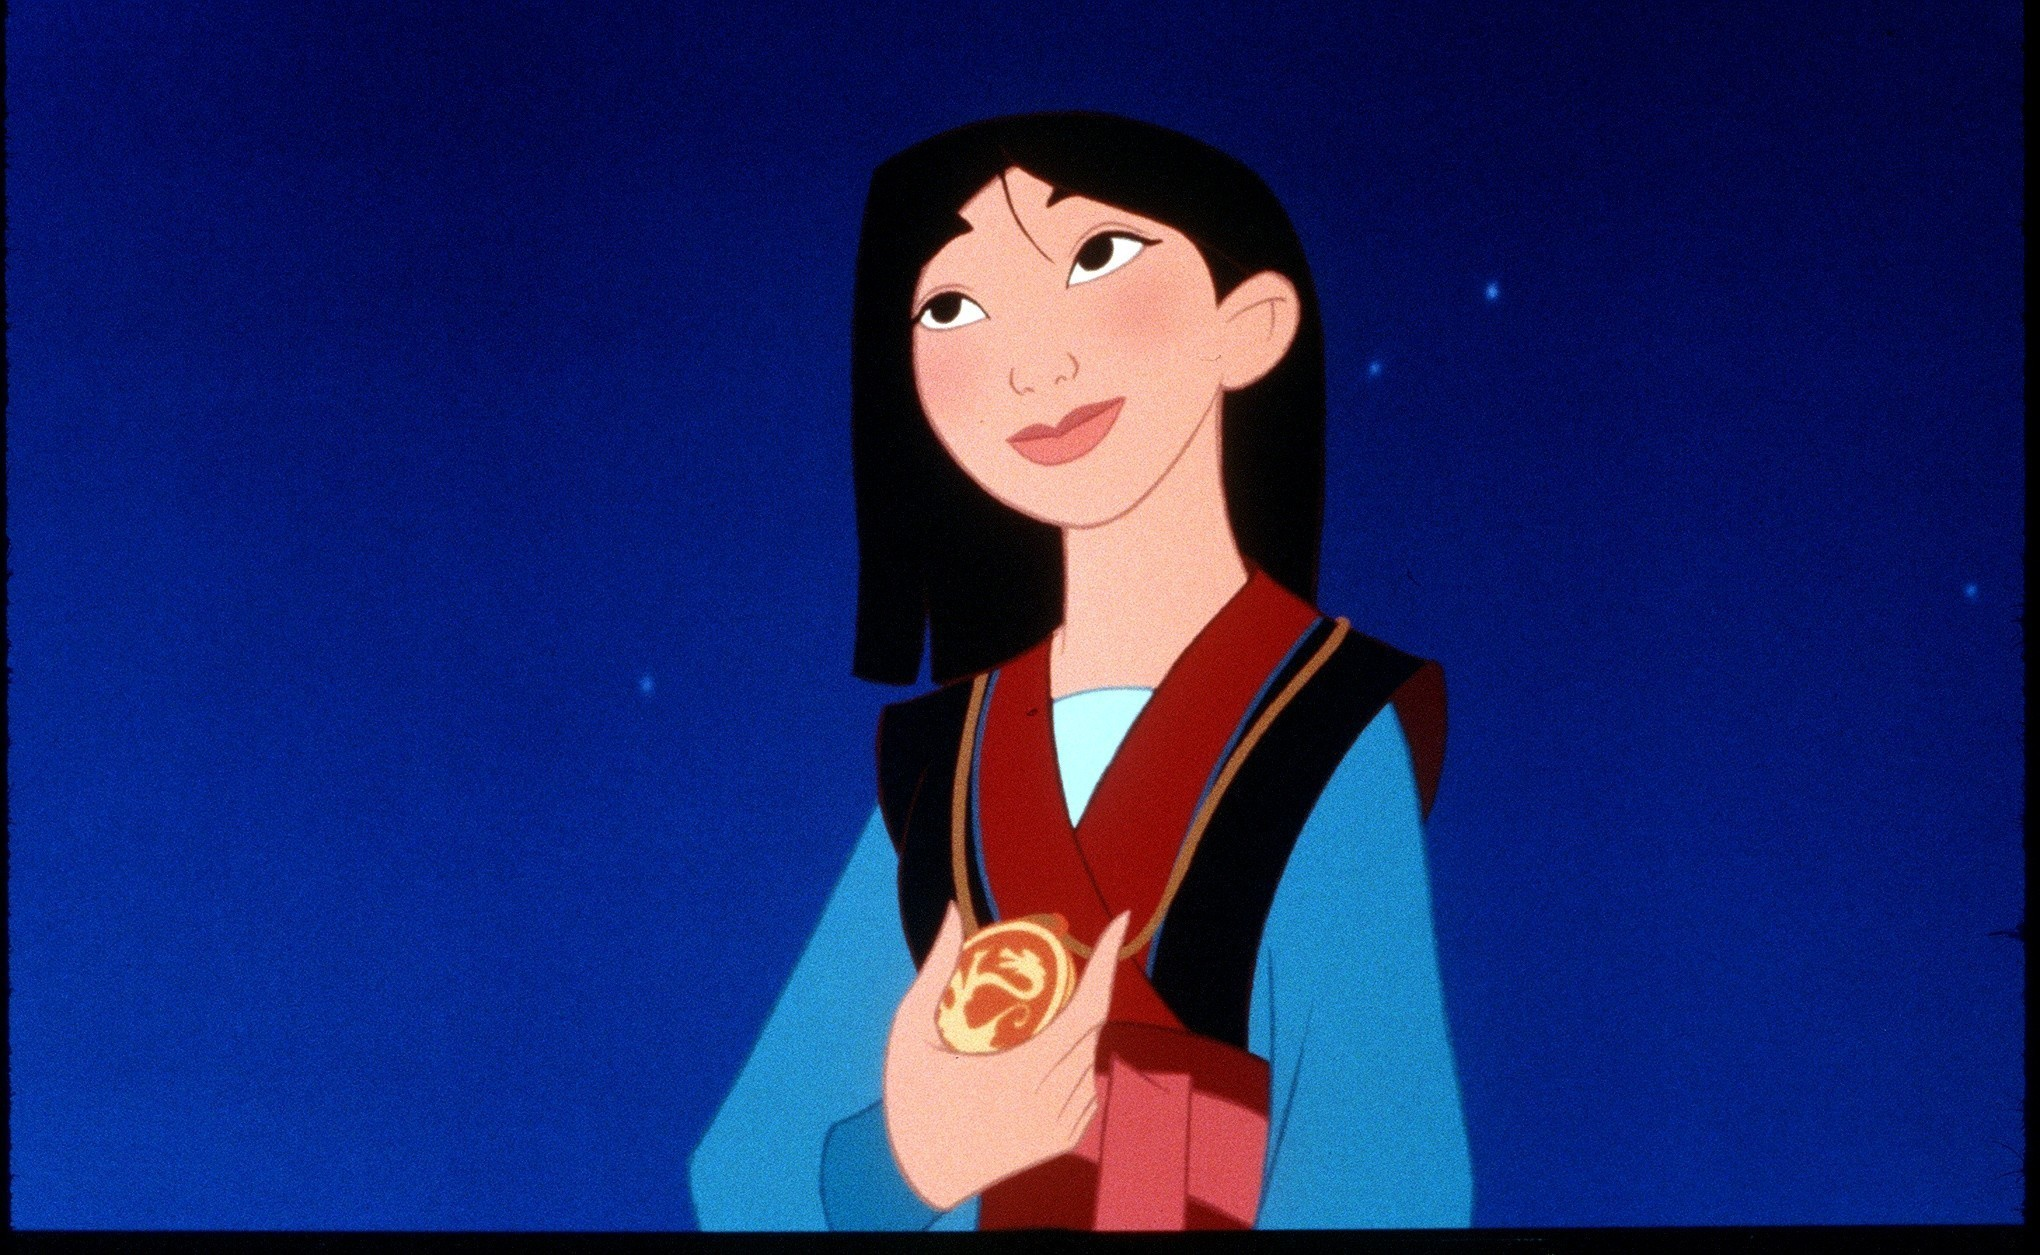 Mulan Hd Wallpapers Desktop Wallpaper Mulan Disney 2040x1255 Wallpaper Teahub Io